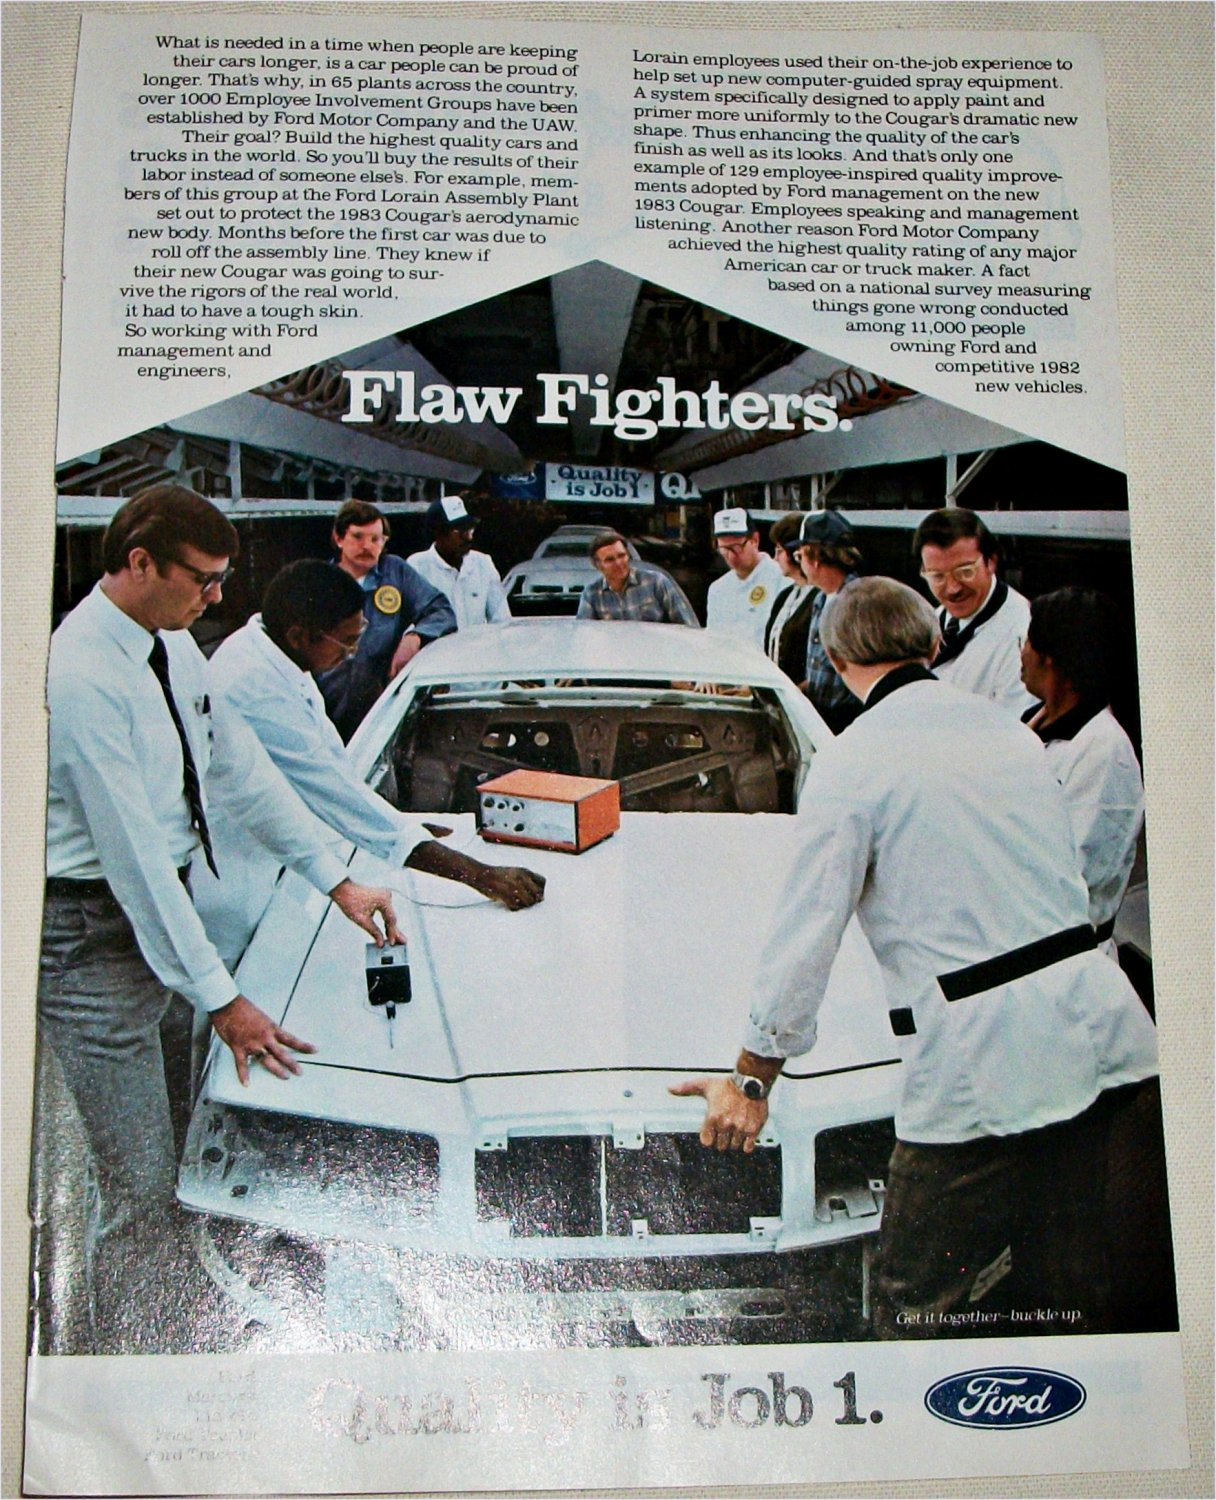 1983 Ford Quality Is Job 1 ad